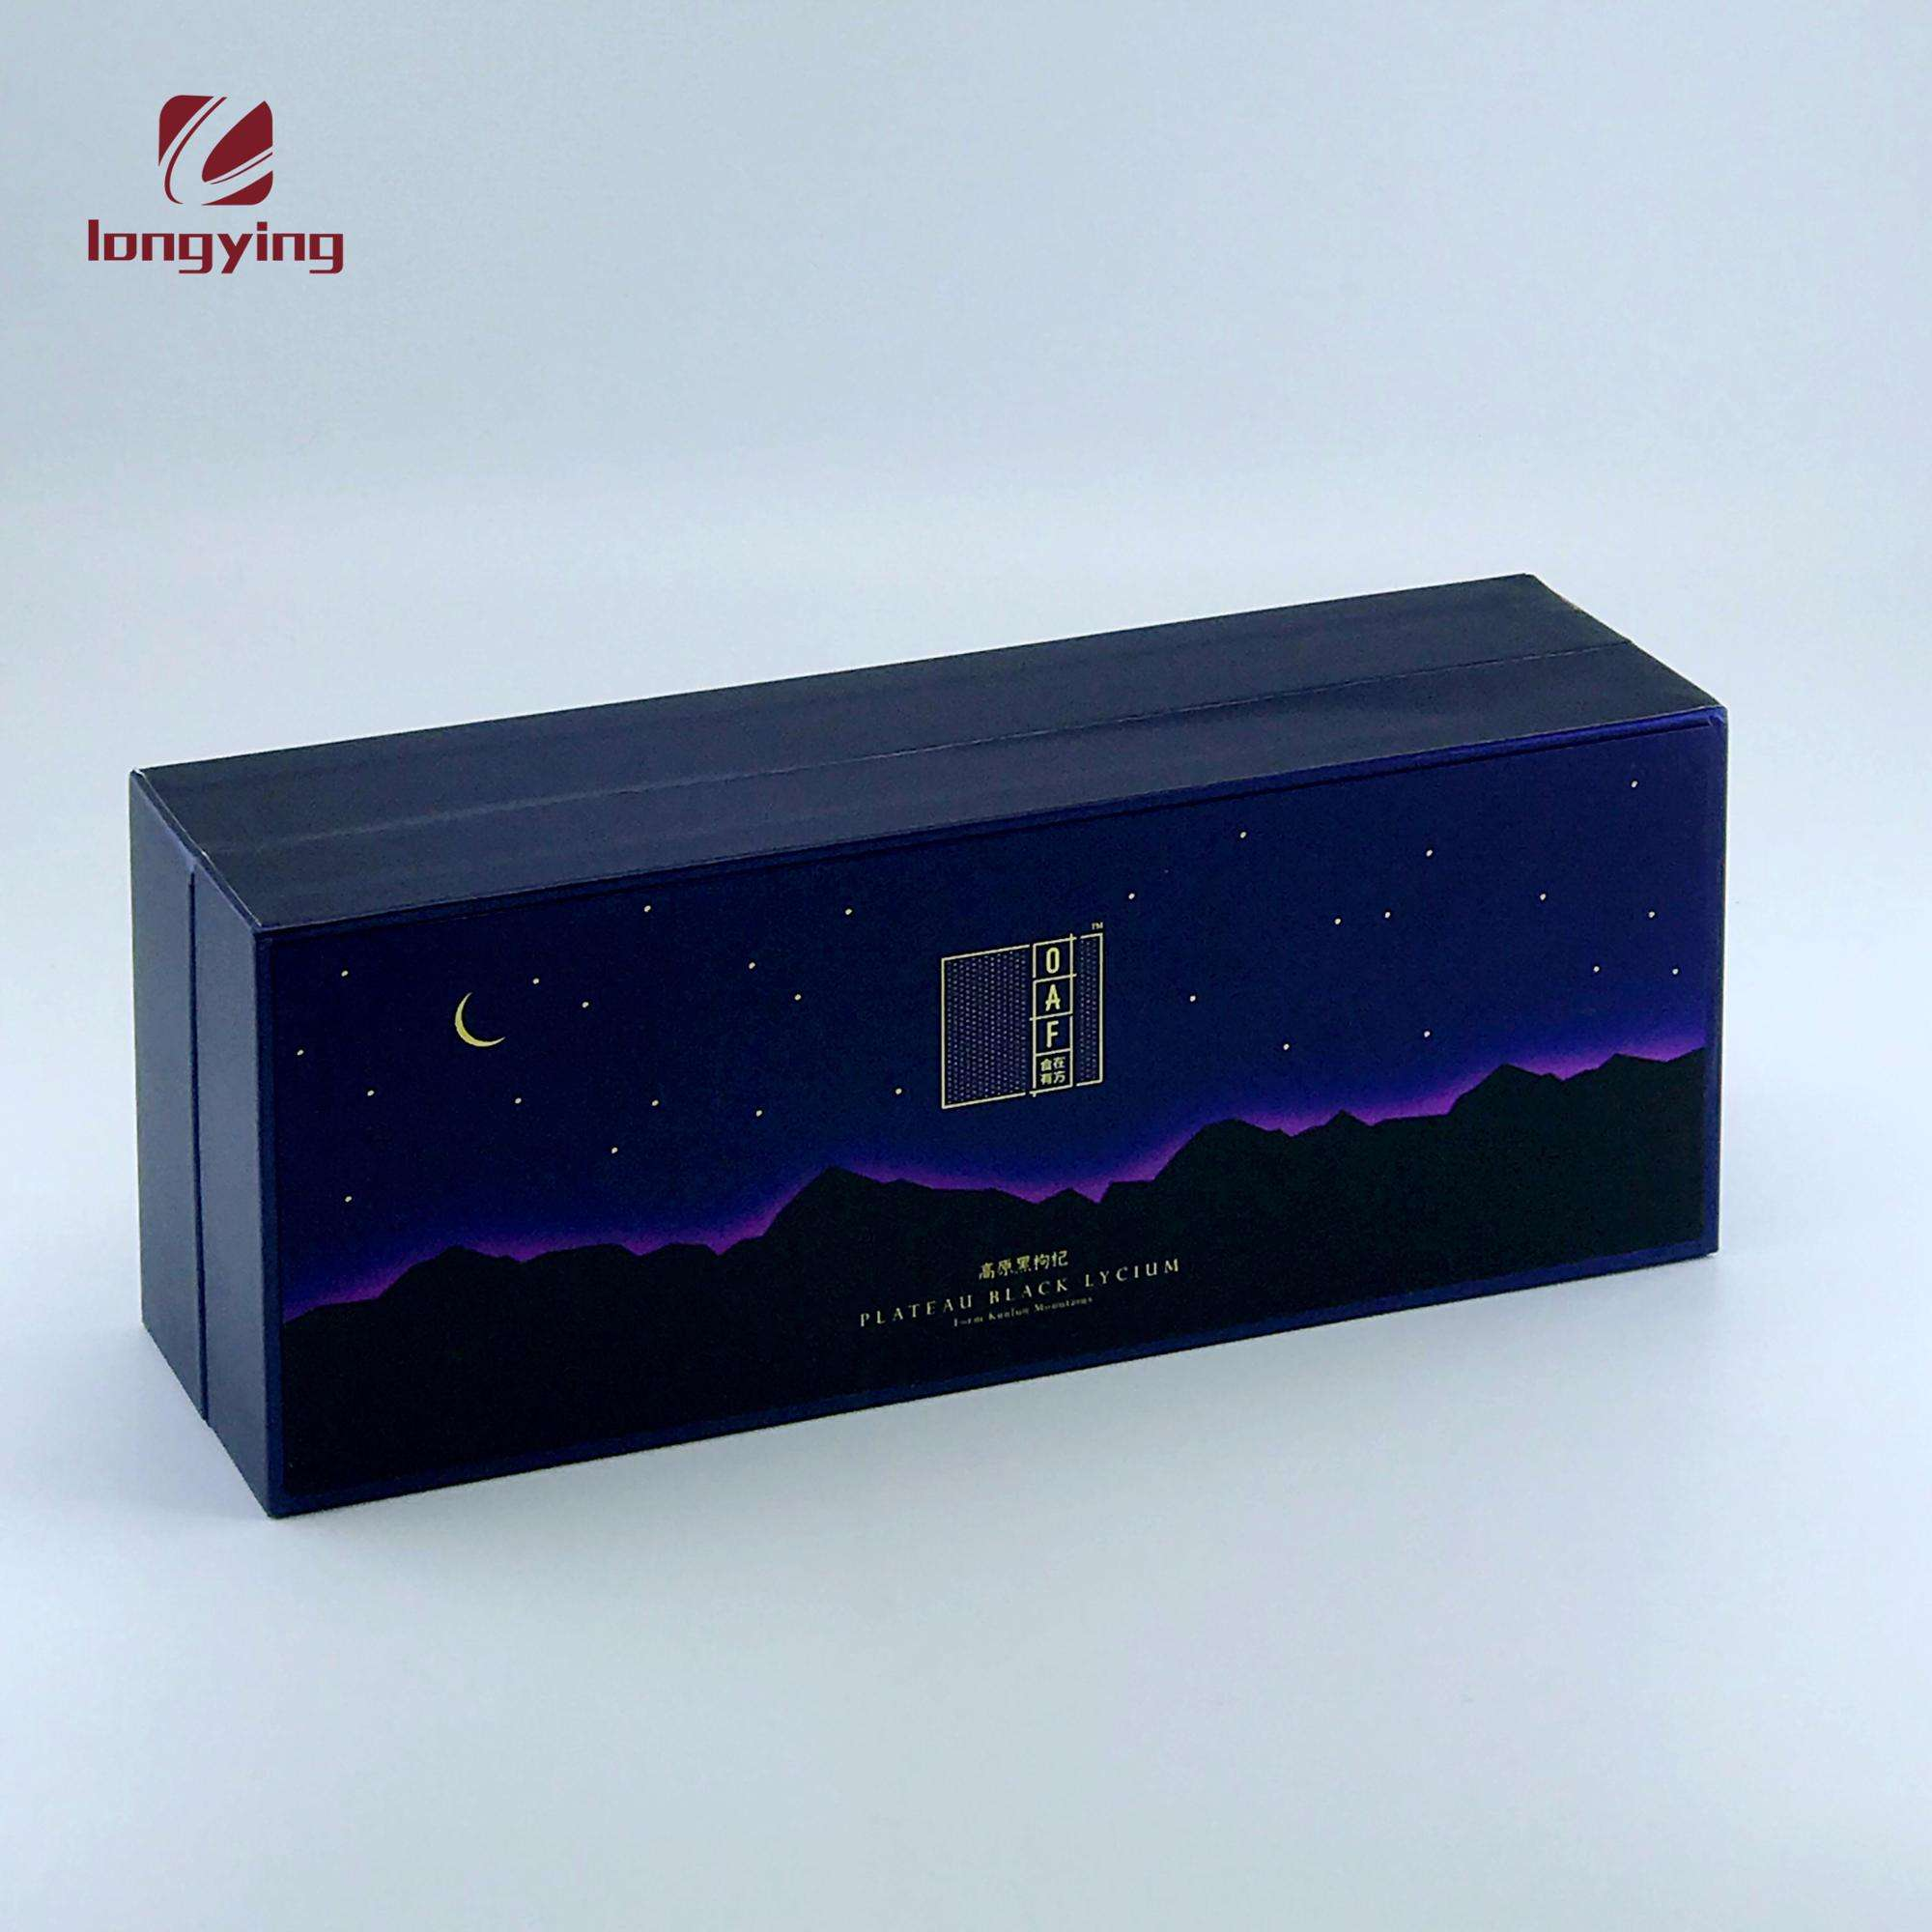 custom luxury blue starry sky flip box packaging with 5 pcs glass honey jars for honey/jam packaging boxes cardboard